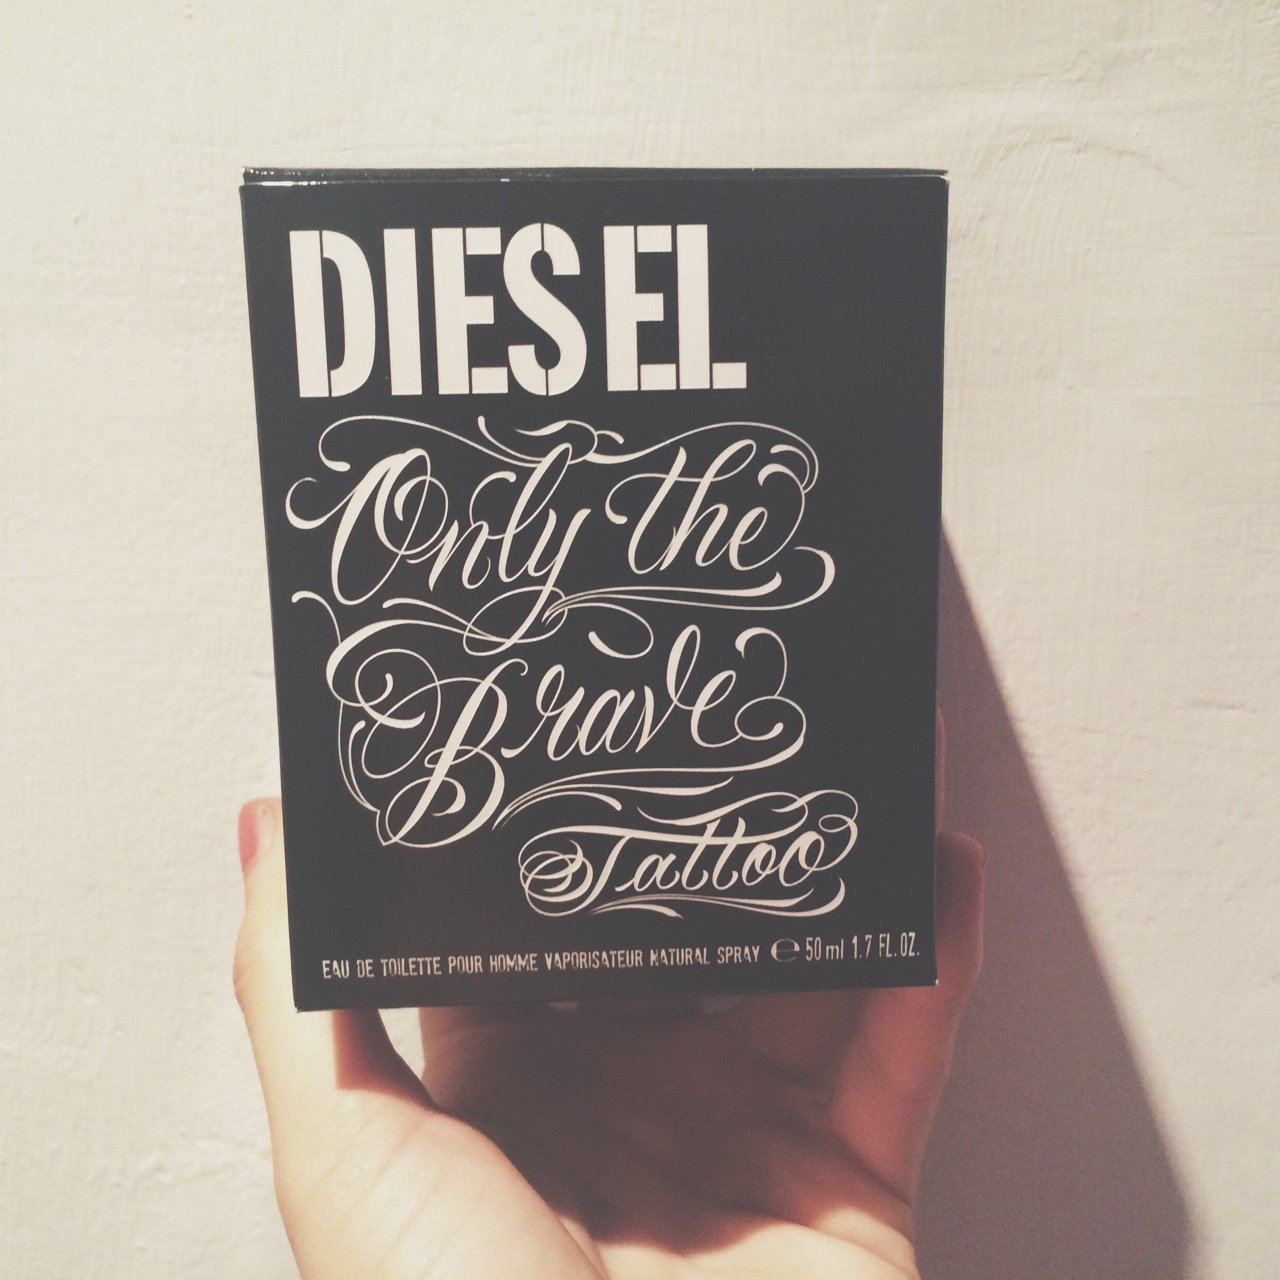 Full Unused Mens Only The Brave Tattoo Diesel Aftershave Depop